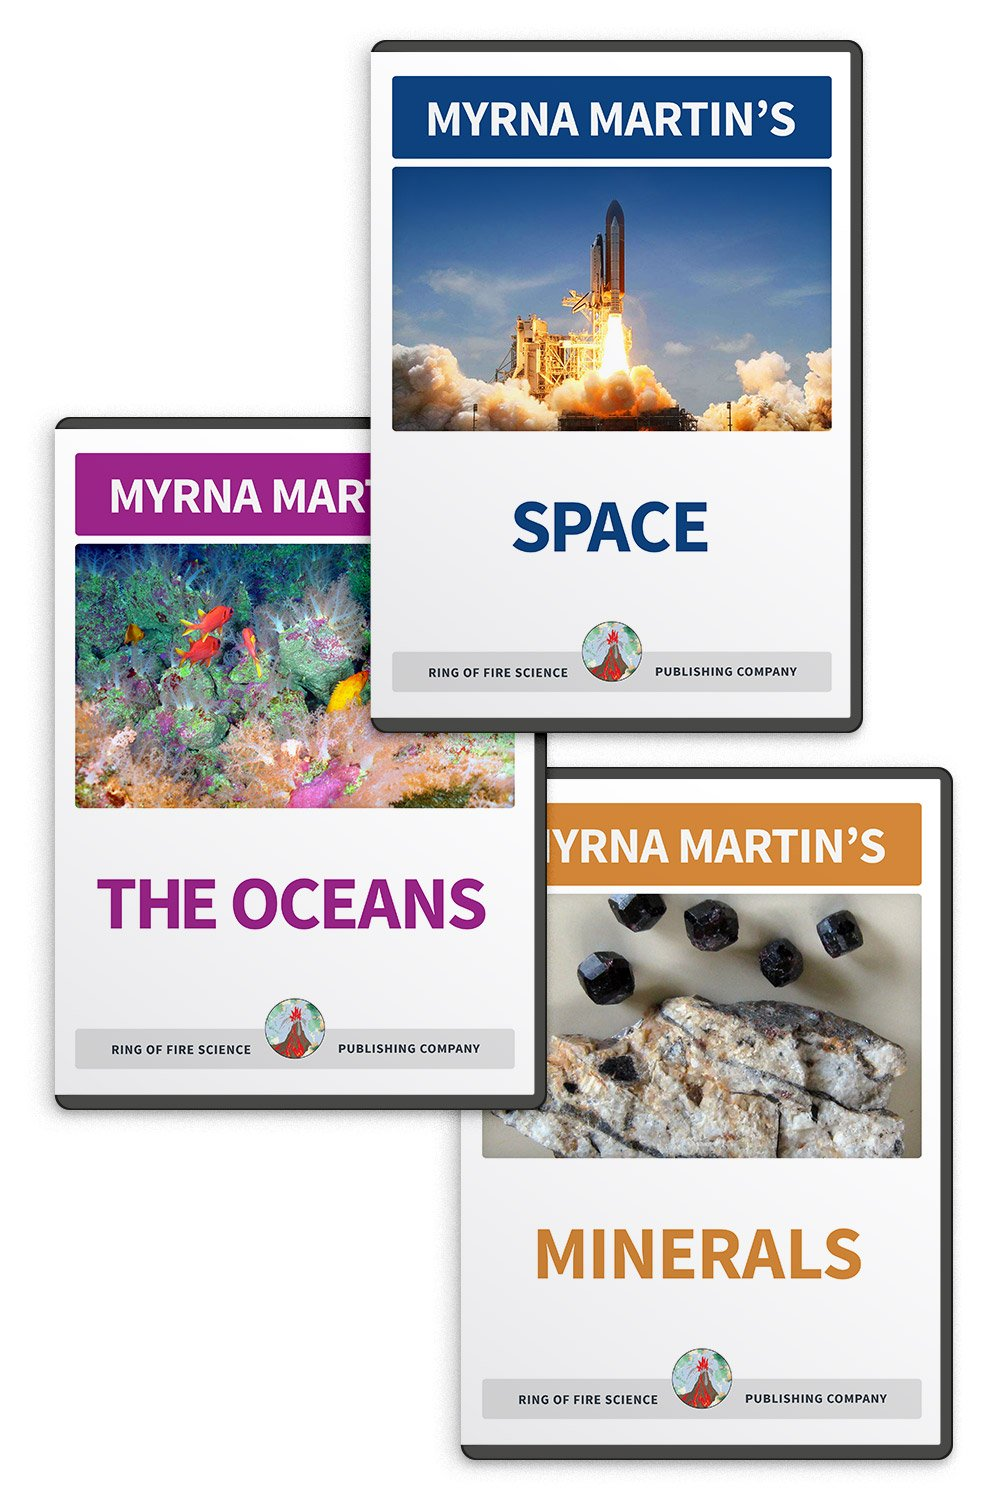 Myrna Martin's Earth Science Videos